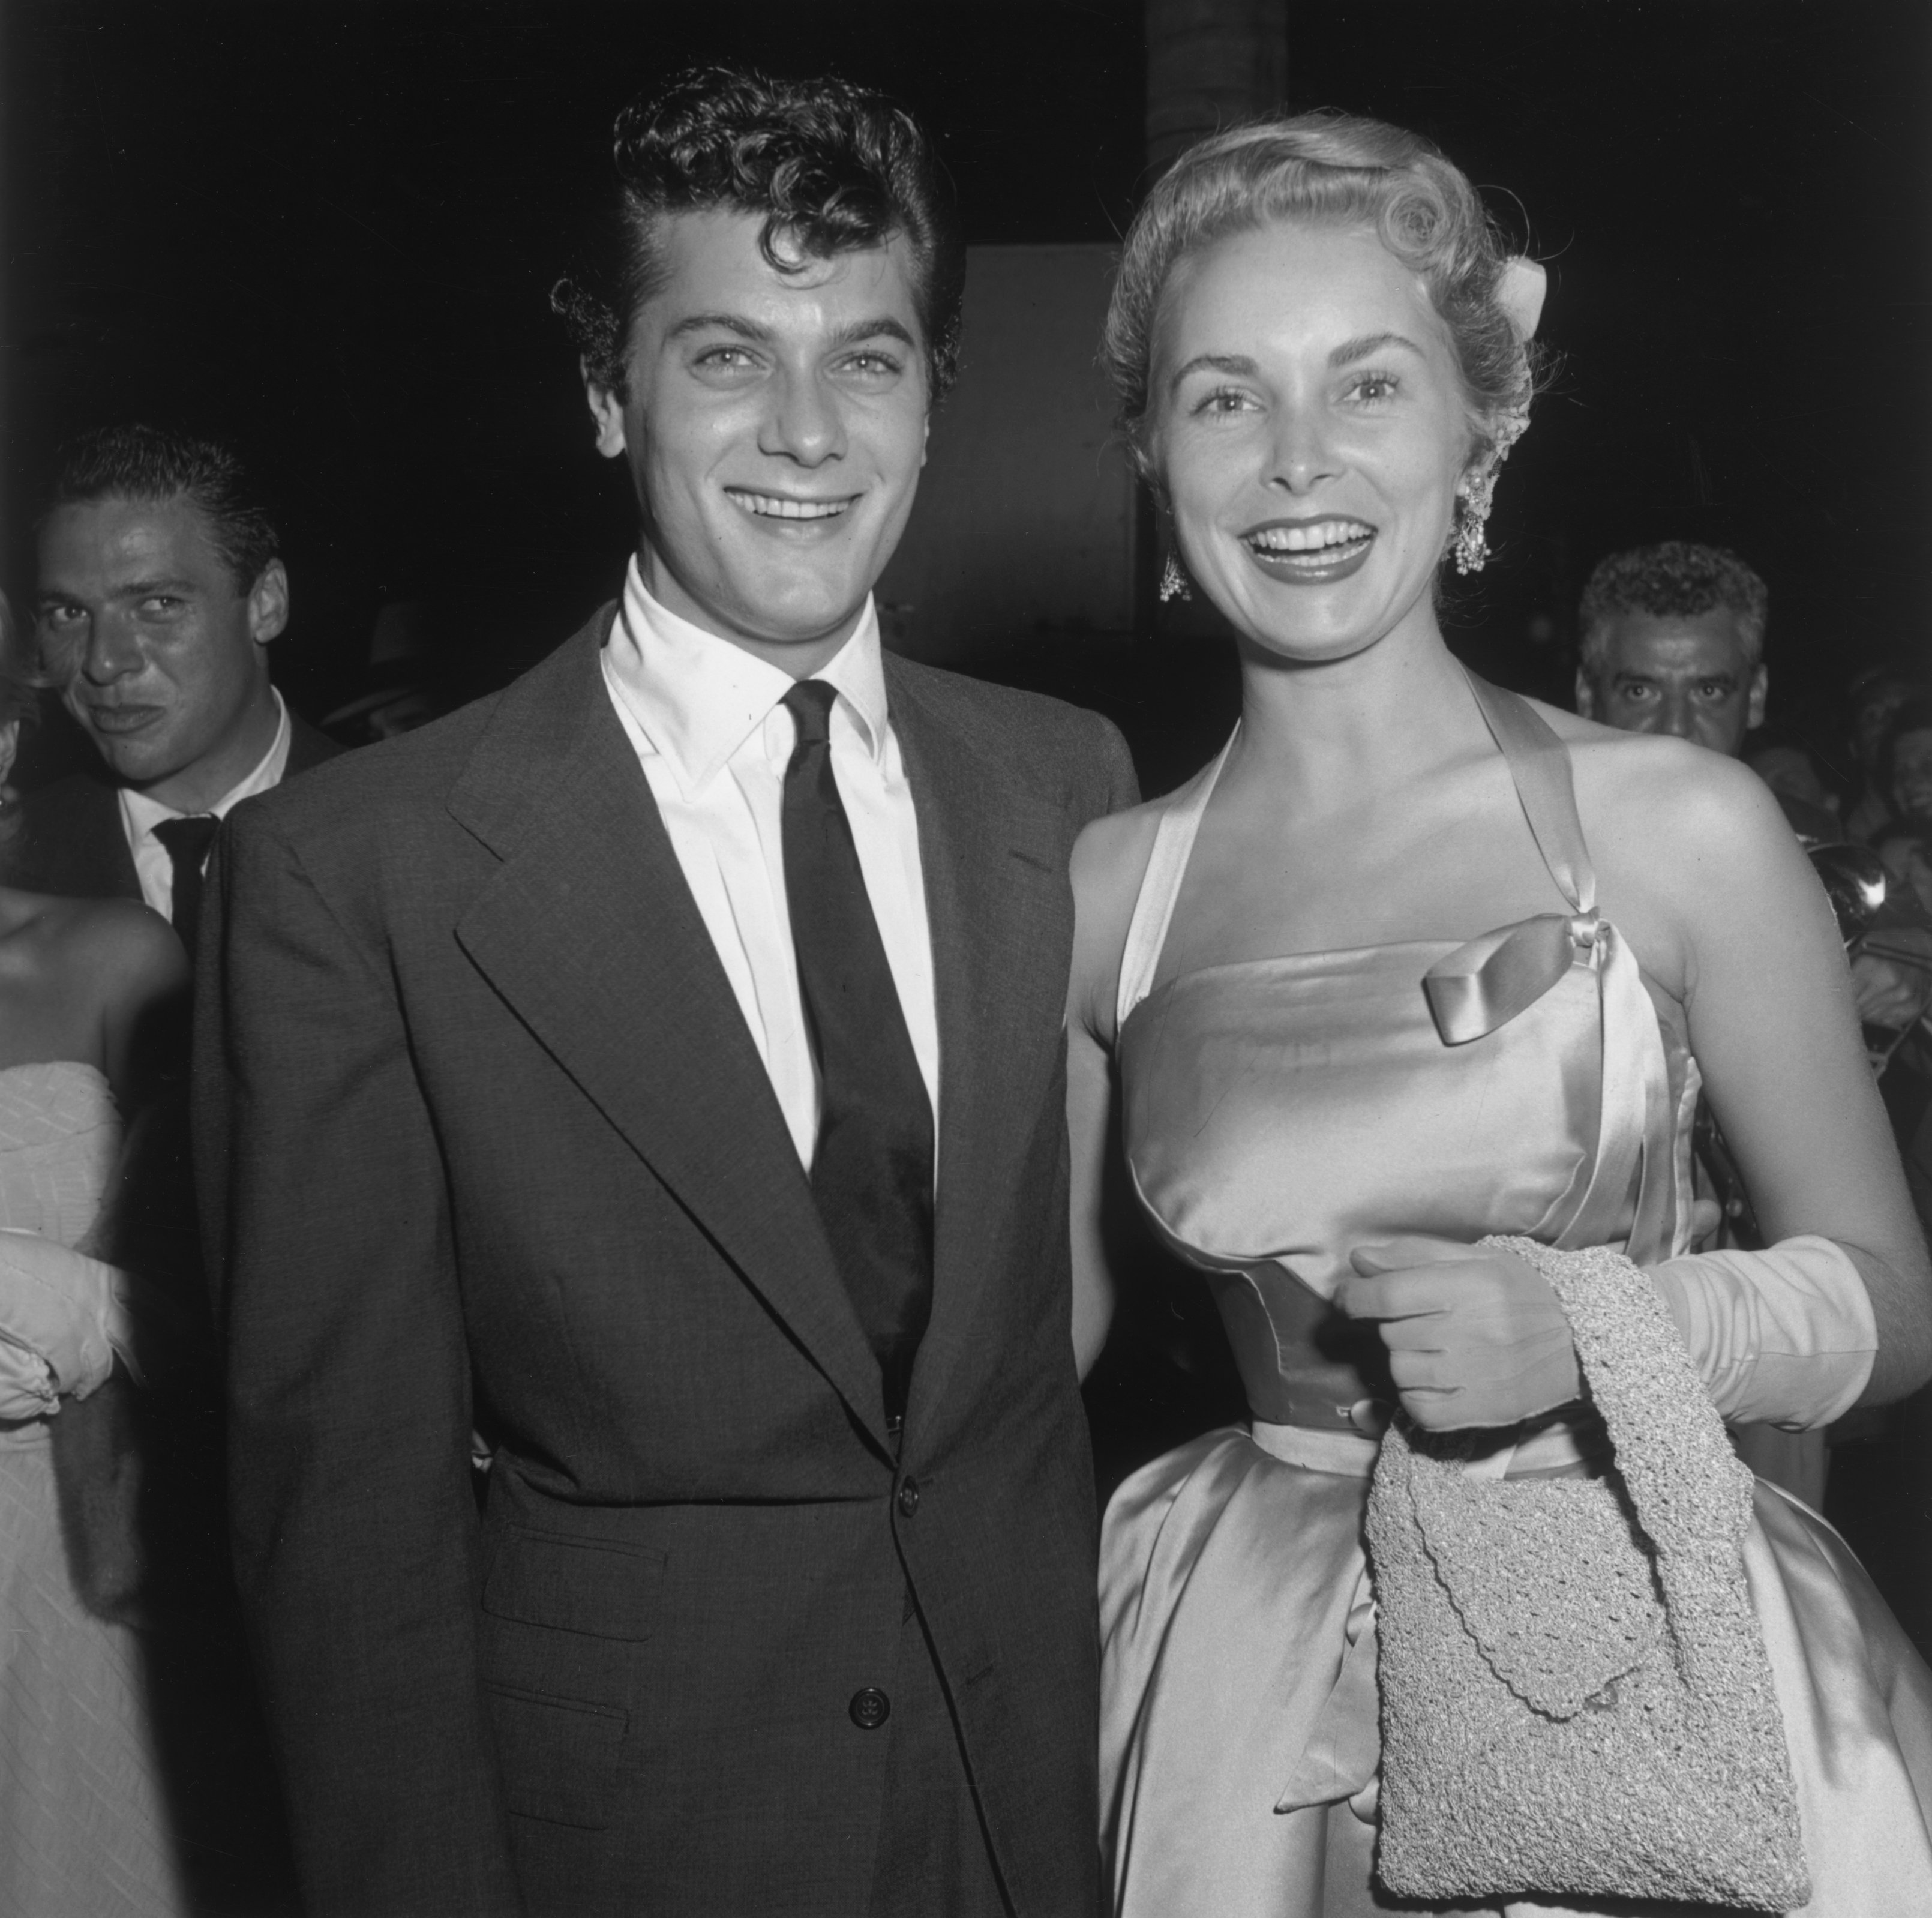 Tony Curtis and Janet Leigh smile as they attend the premiere of director Elia Kazan's 1951 film, 'A Streetcar Named Desire,' Hollywood, California | Photo: Getty Images